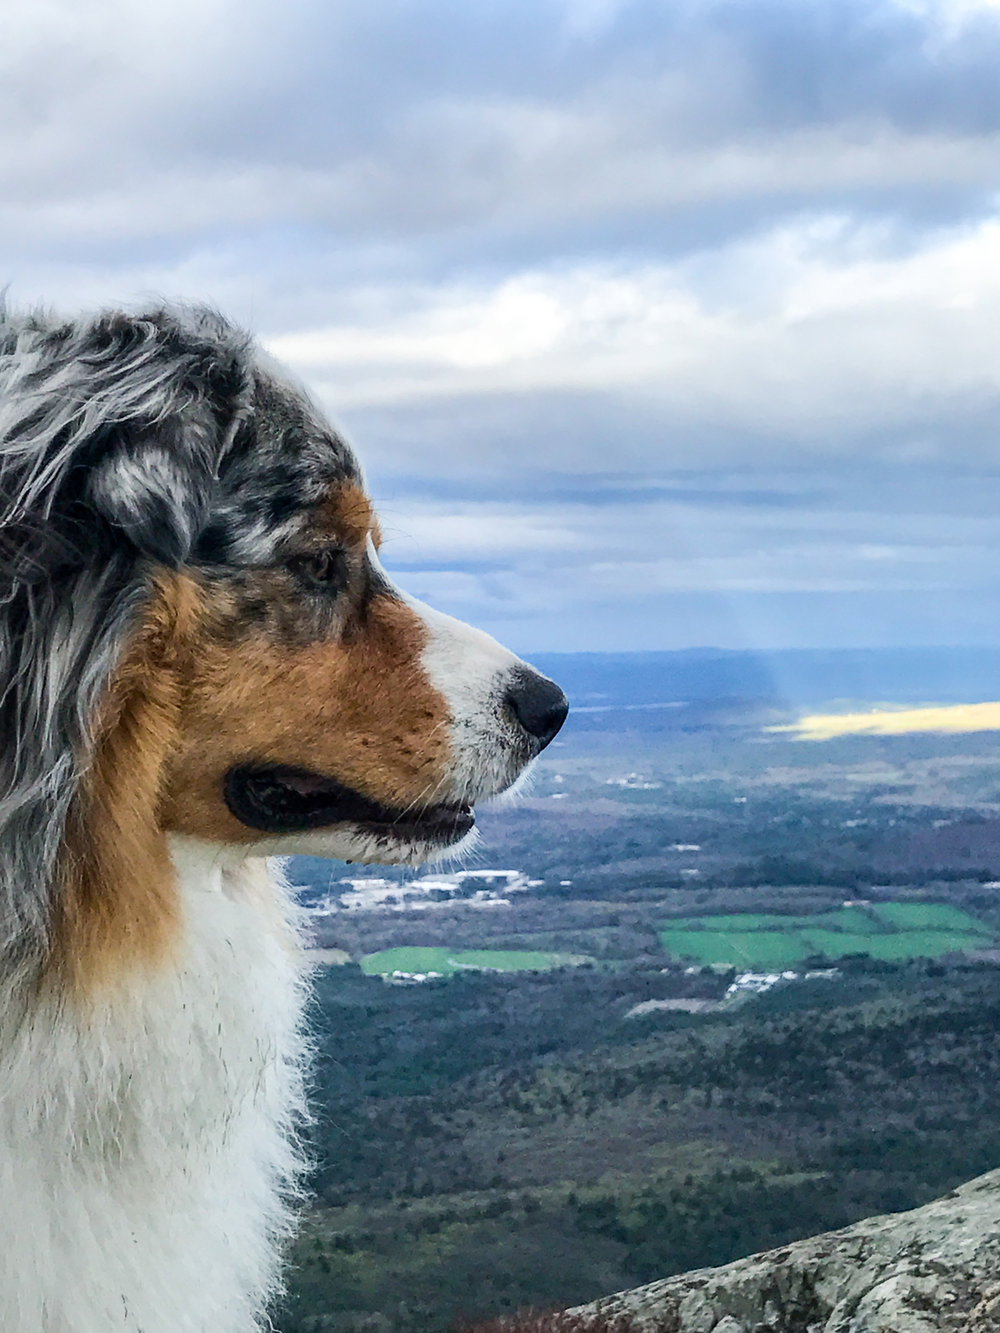 Squall overlooking Mount Washington Valley.